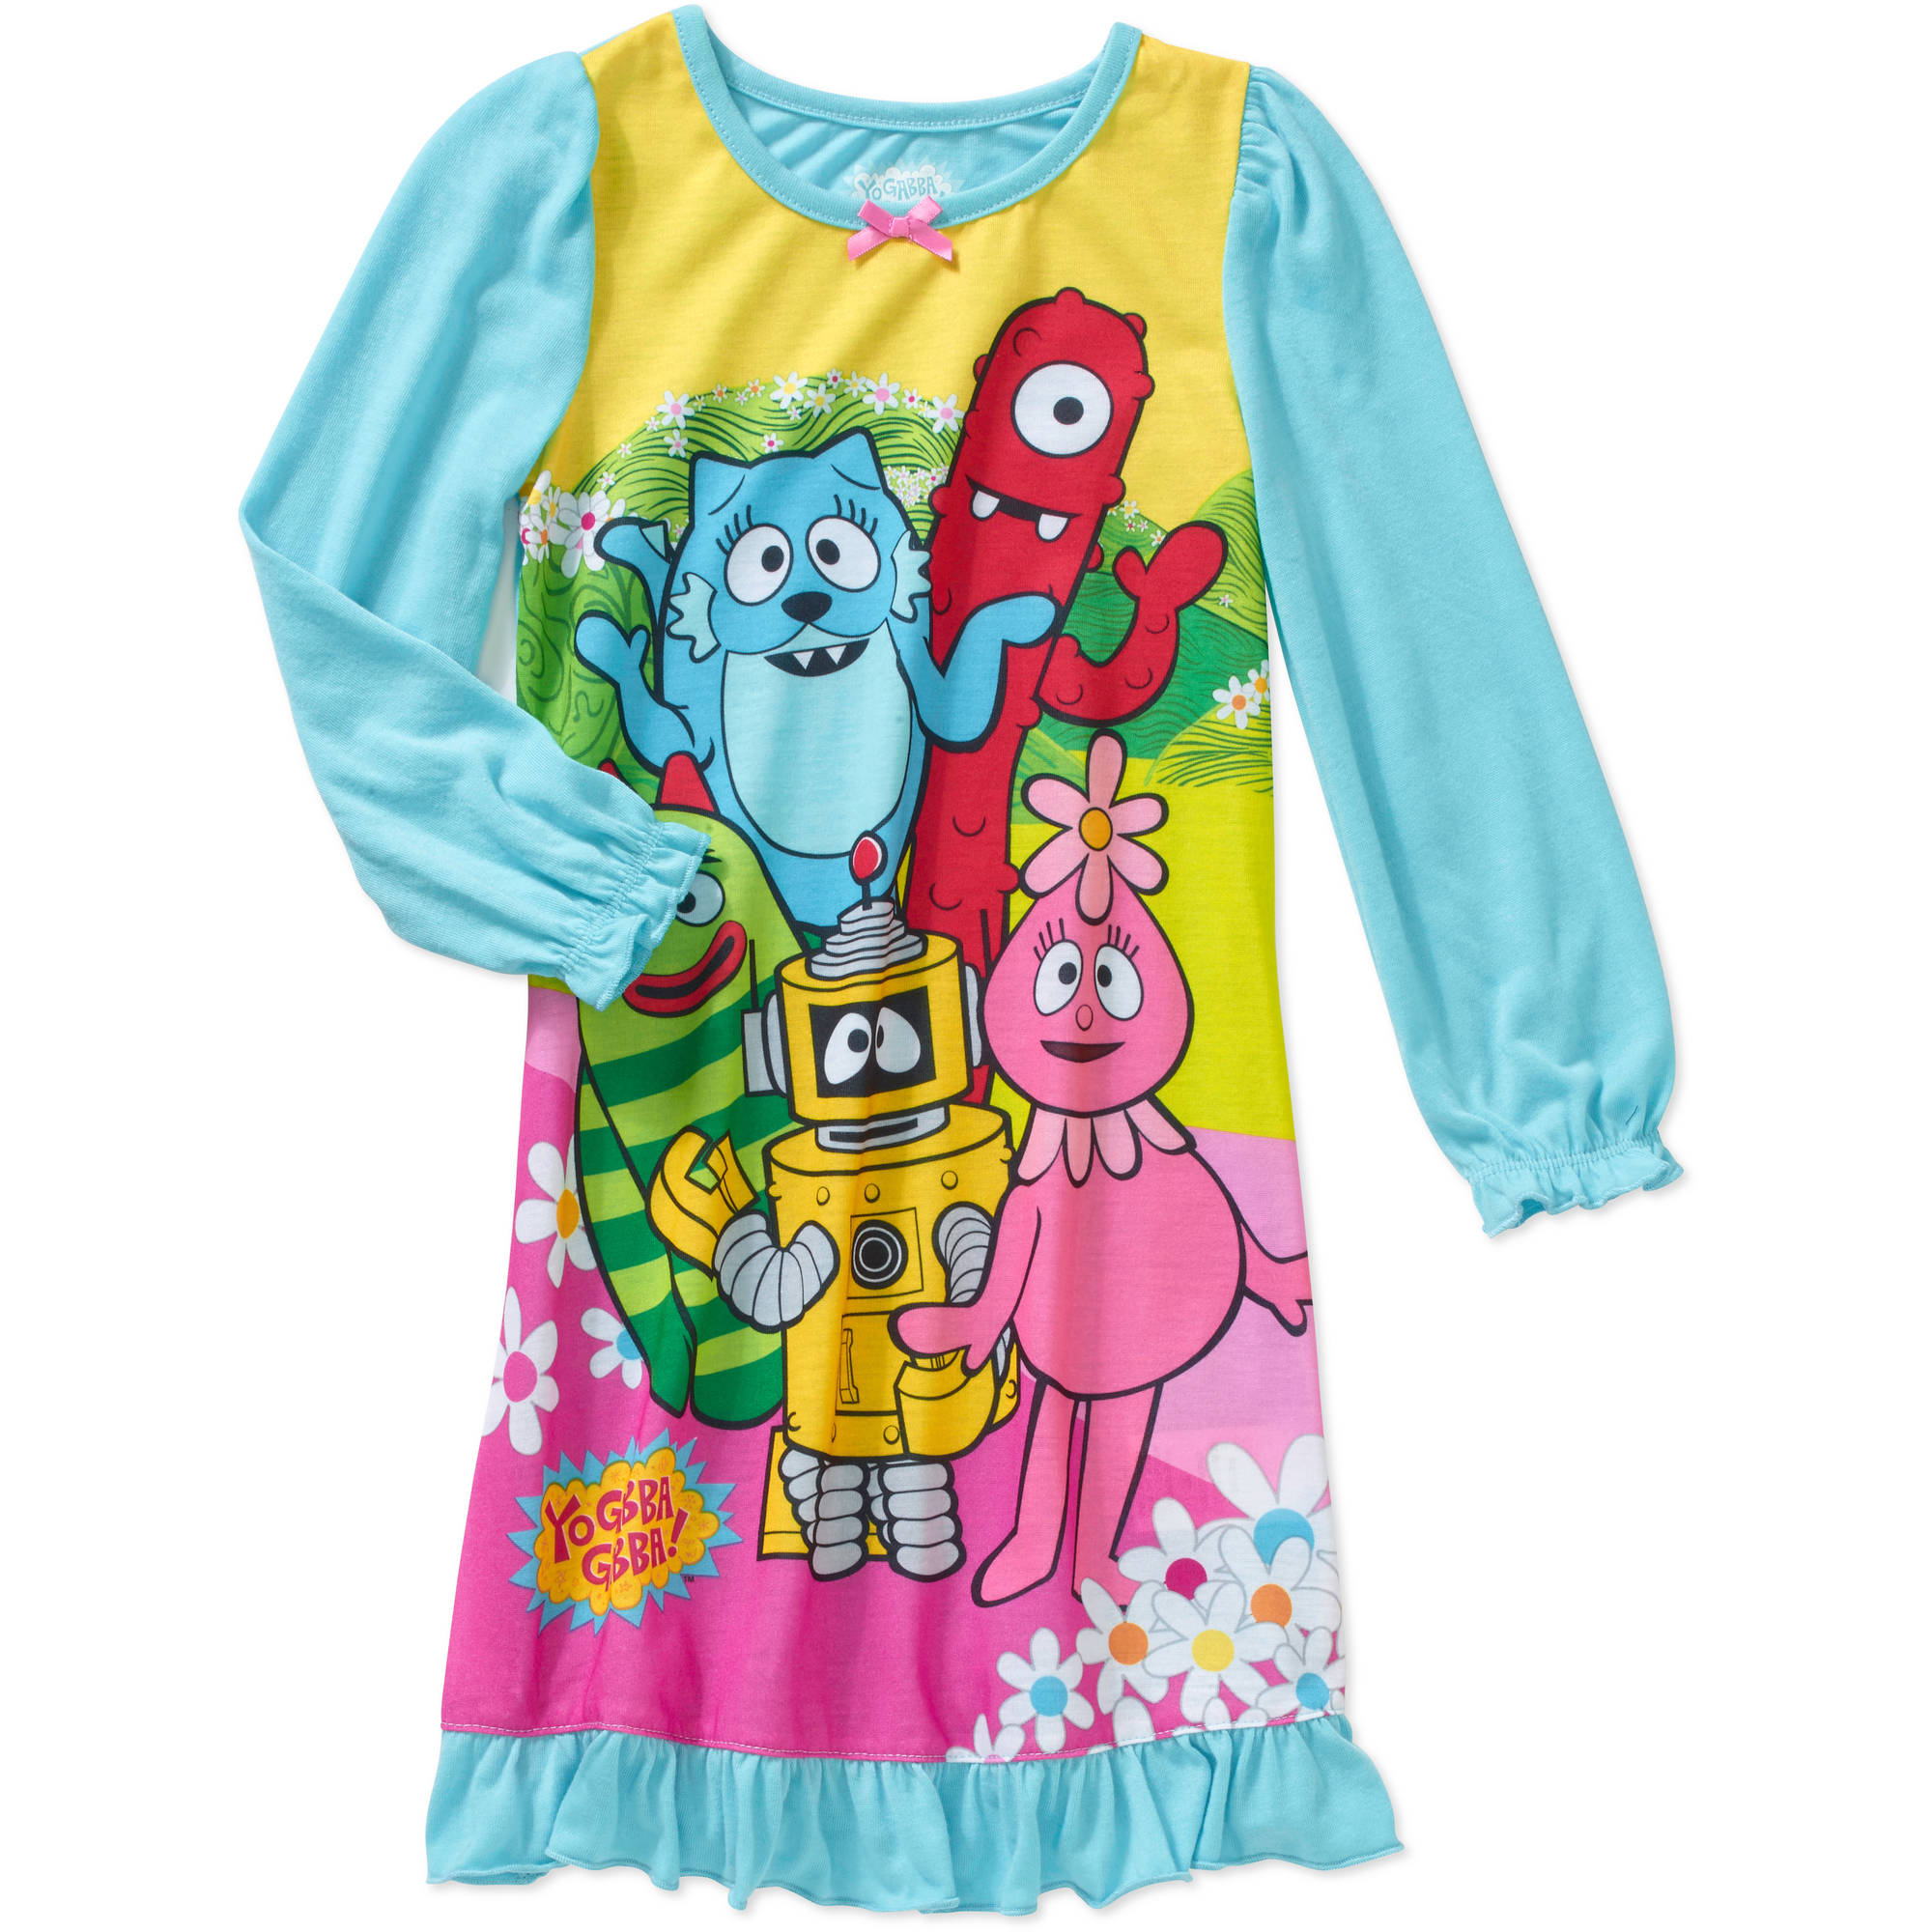 Yo Gabba! Gabba Toddler Girls' Nightgown